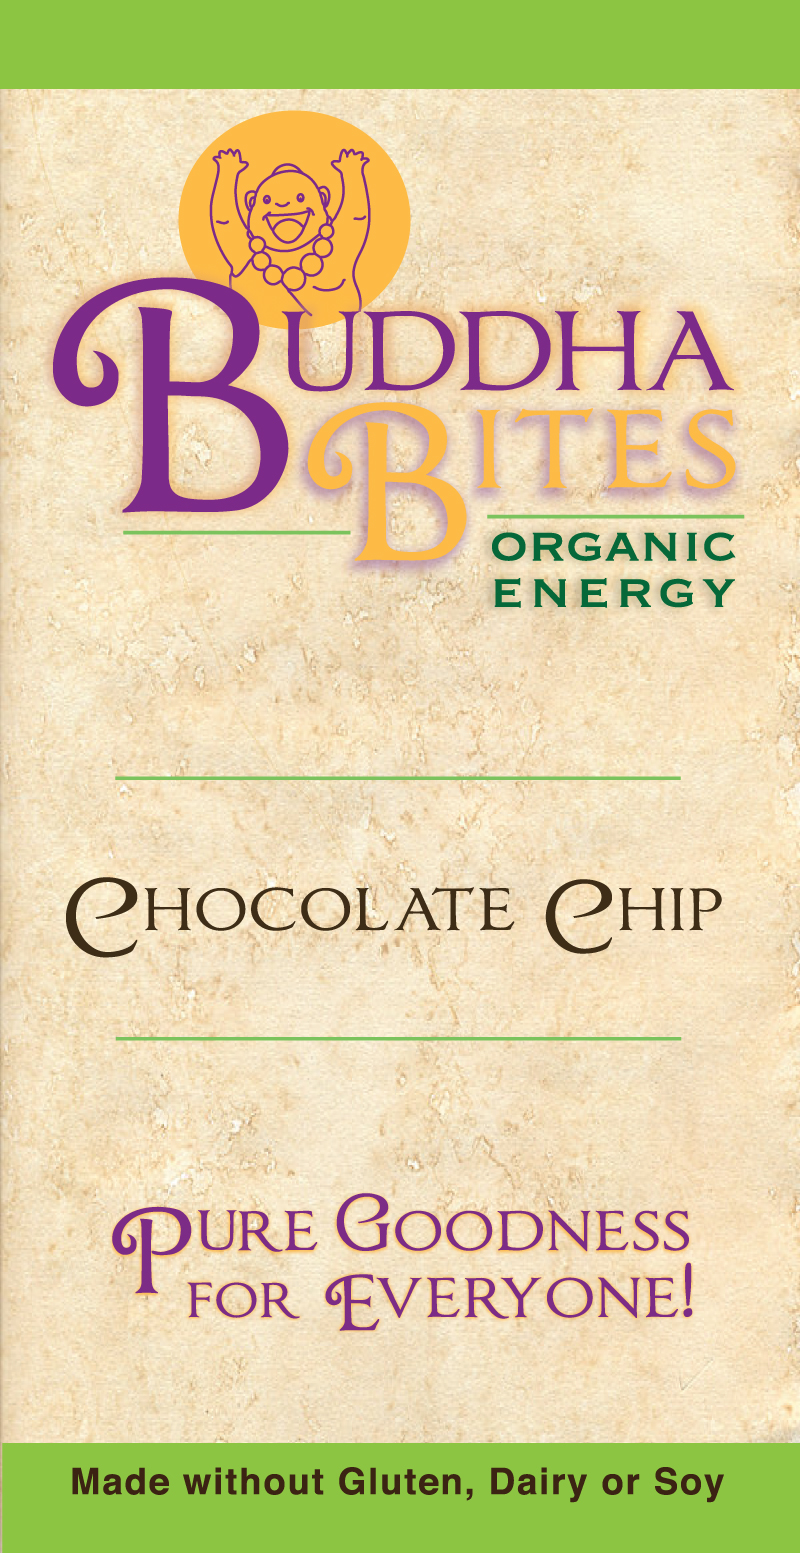 BuddhaBites-Chocolate-Chip-Front-No-Weight-Outlines.jpg